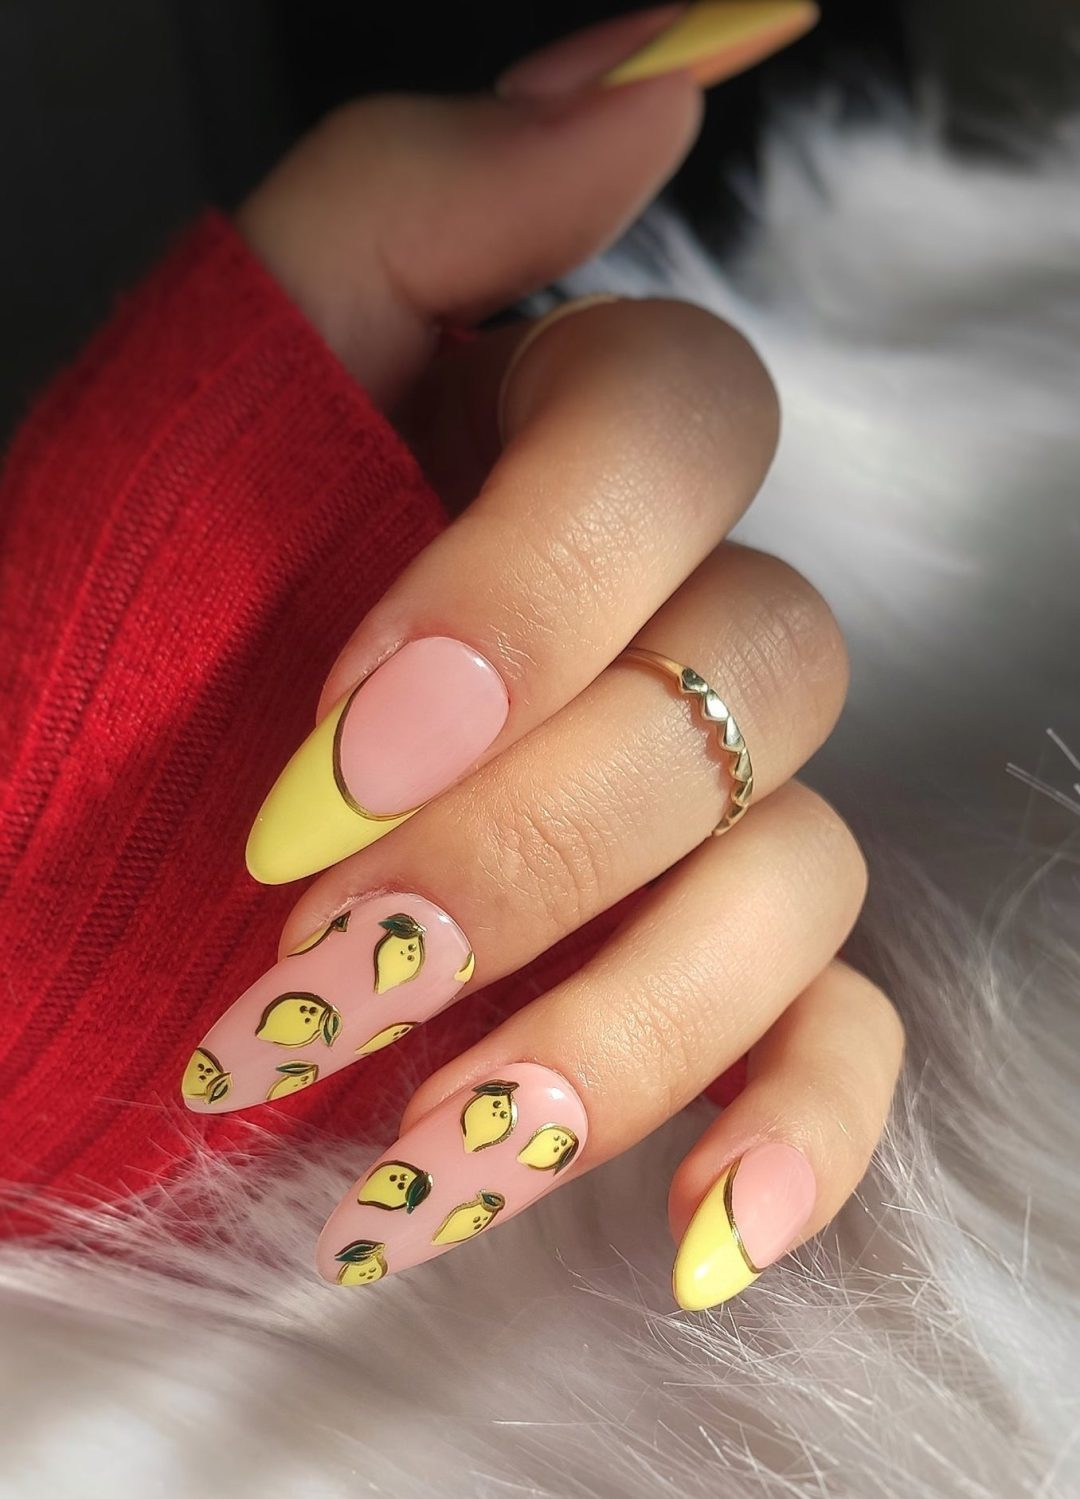 Light yellow lemon print nails with French tips